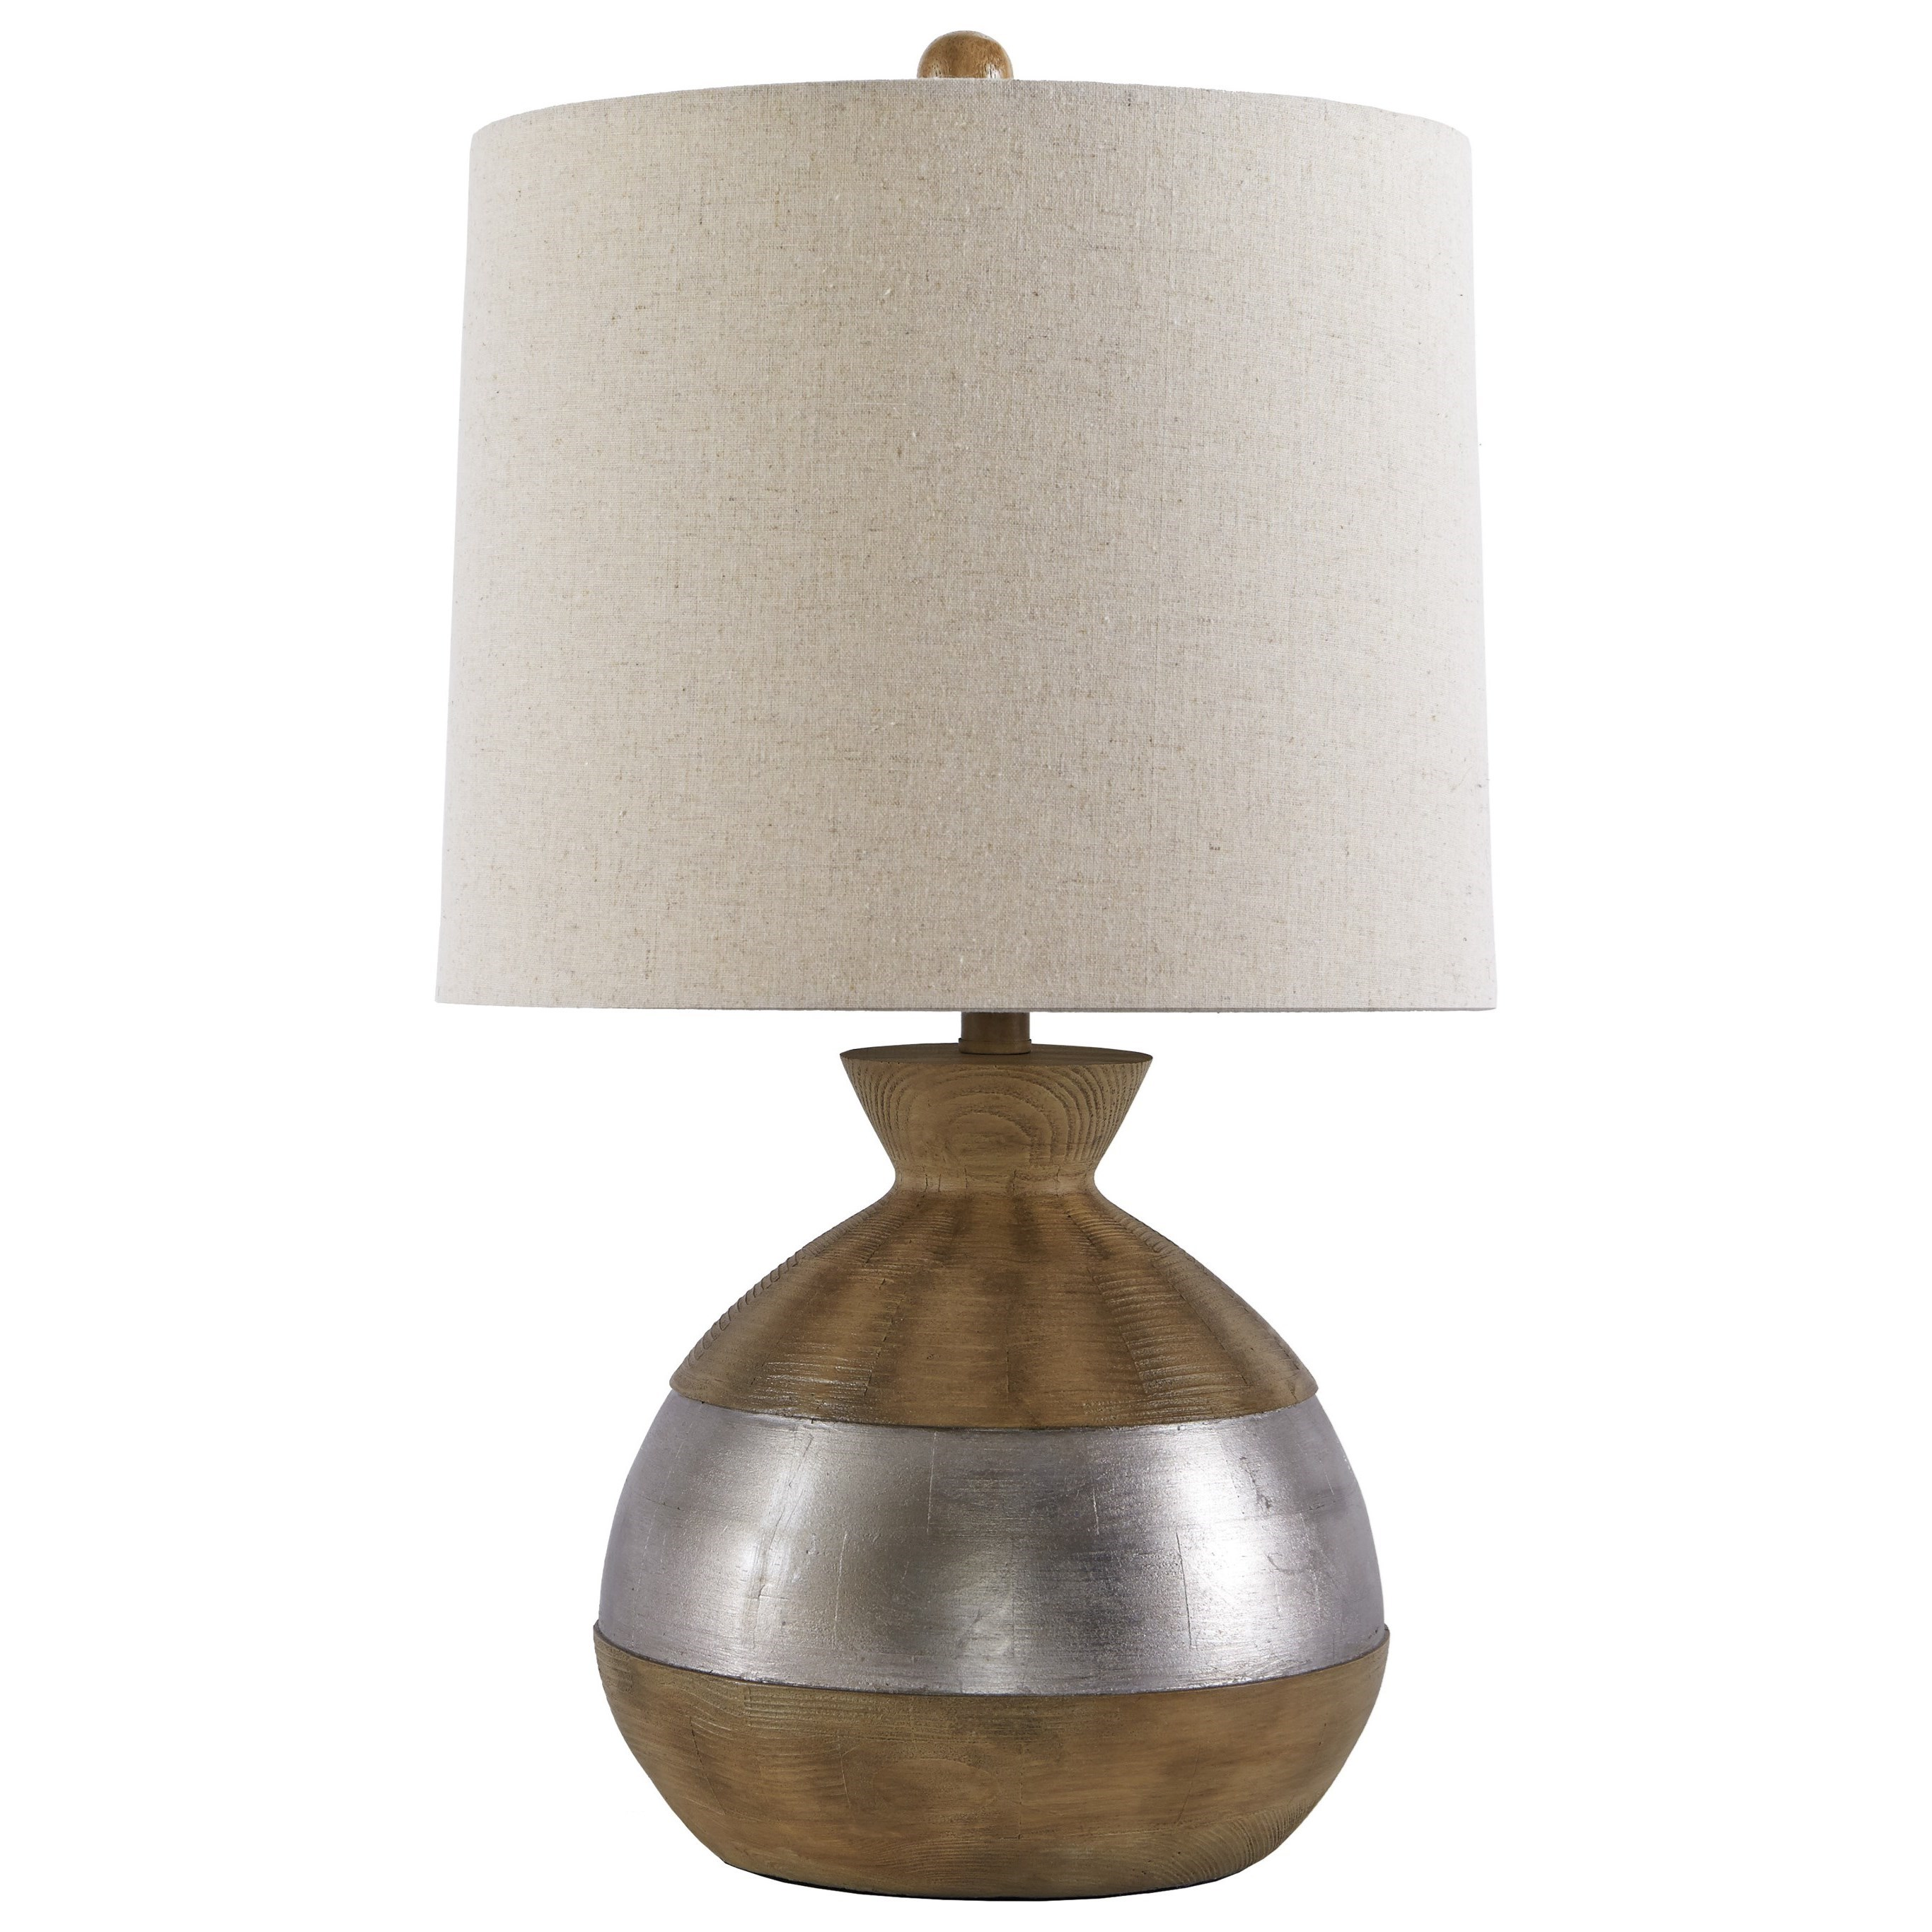 Signature Design by Ashley Lamps - Contemporary Mandla Brown/Silver Finish Poly Table Lamp - Item Number: L328994